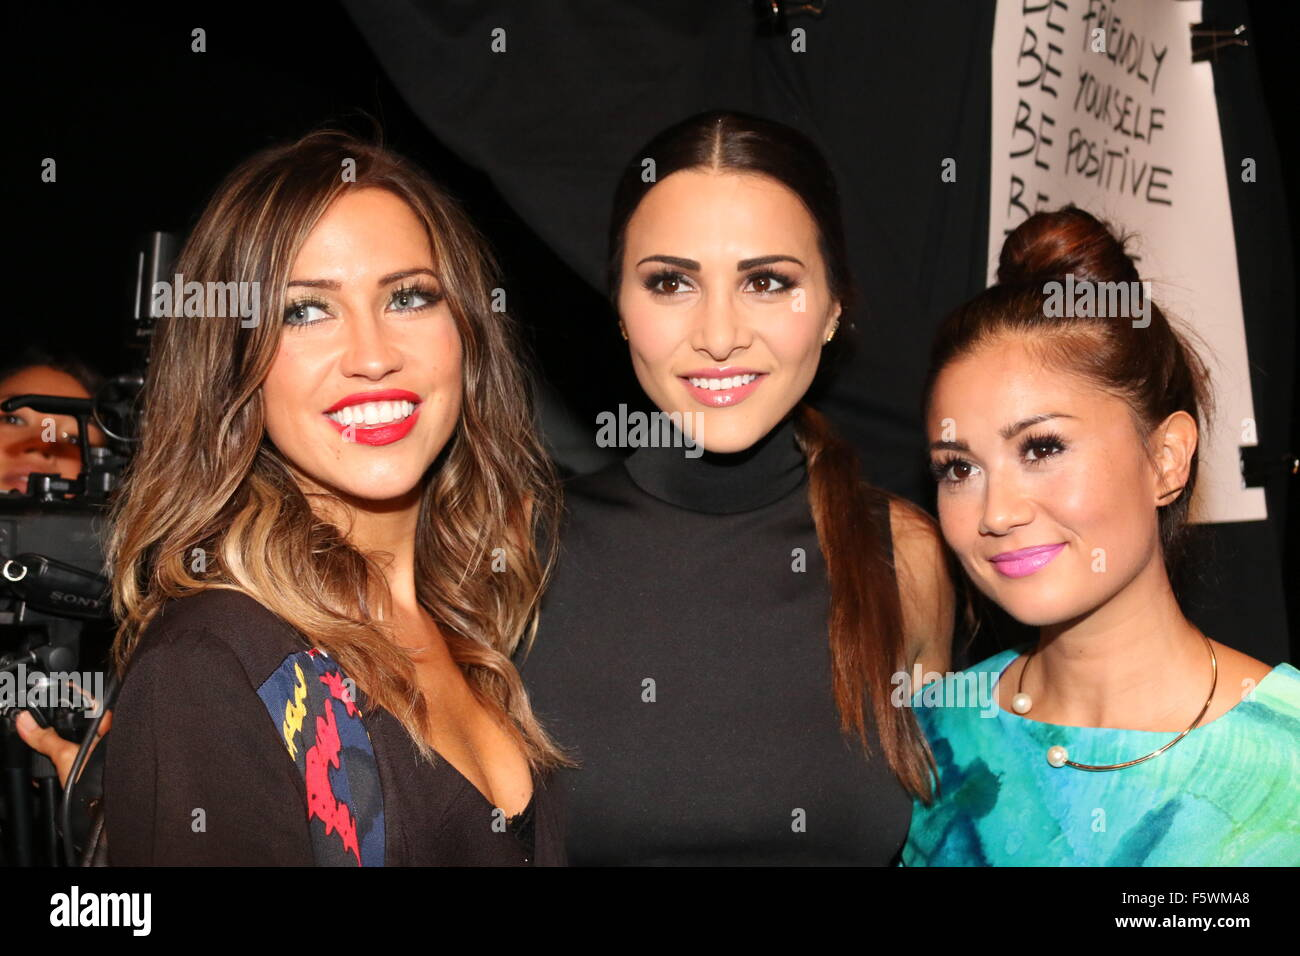 andi dorfman stock photos andi dorfman stock images page 3 alamy